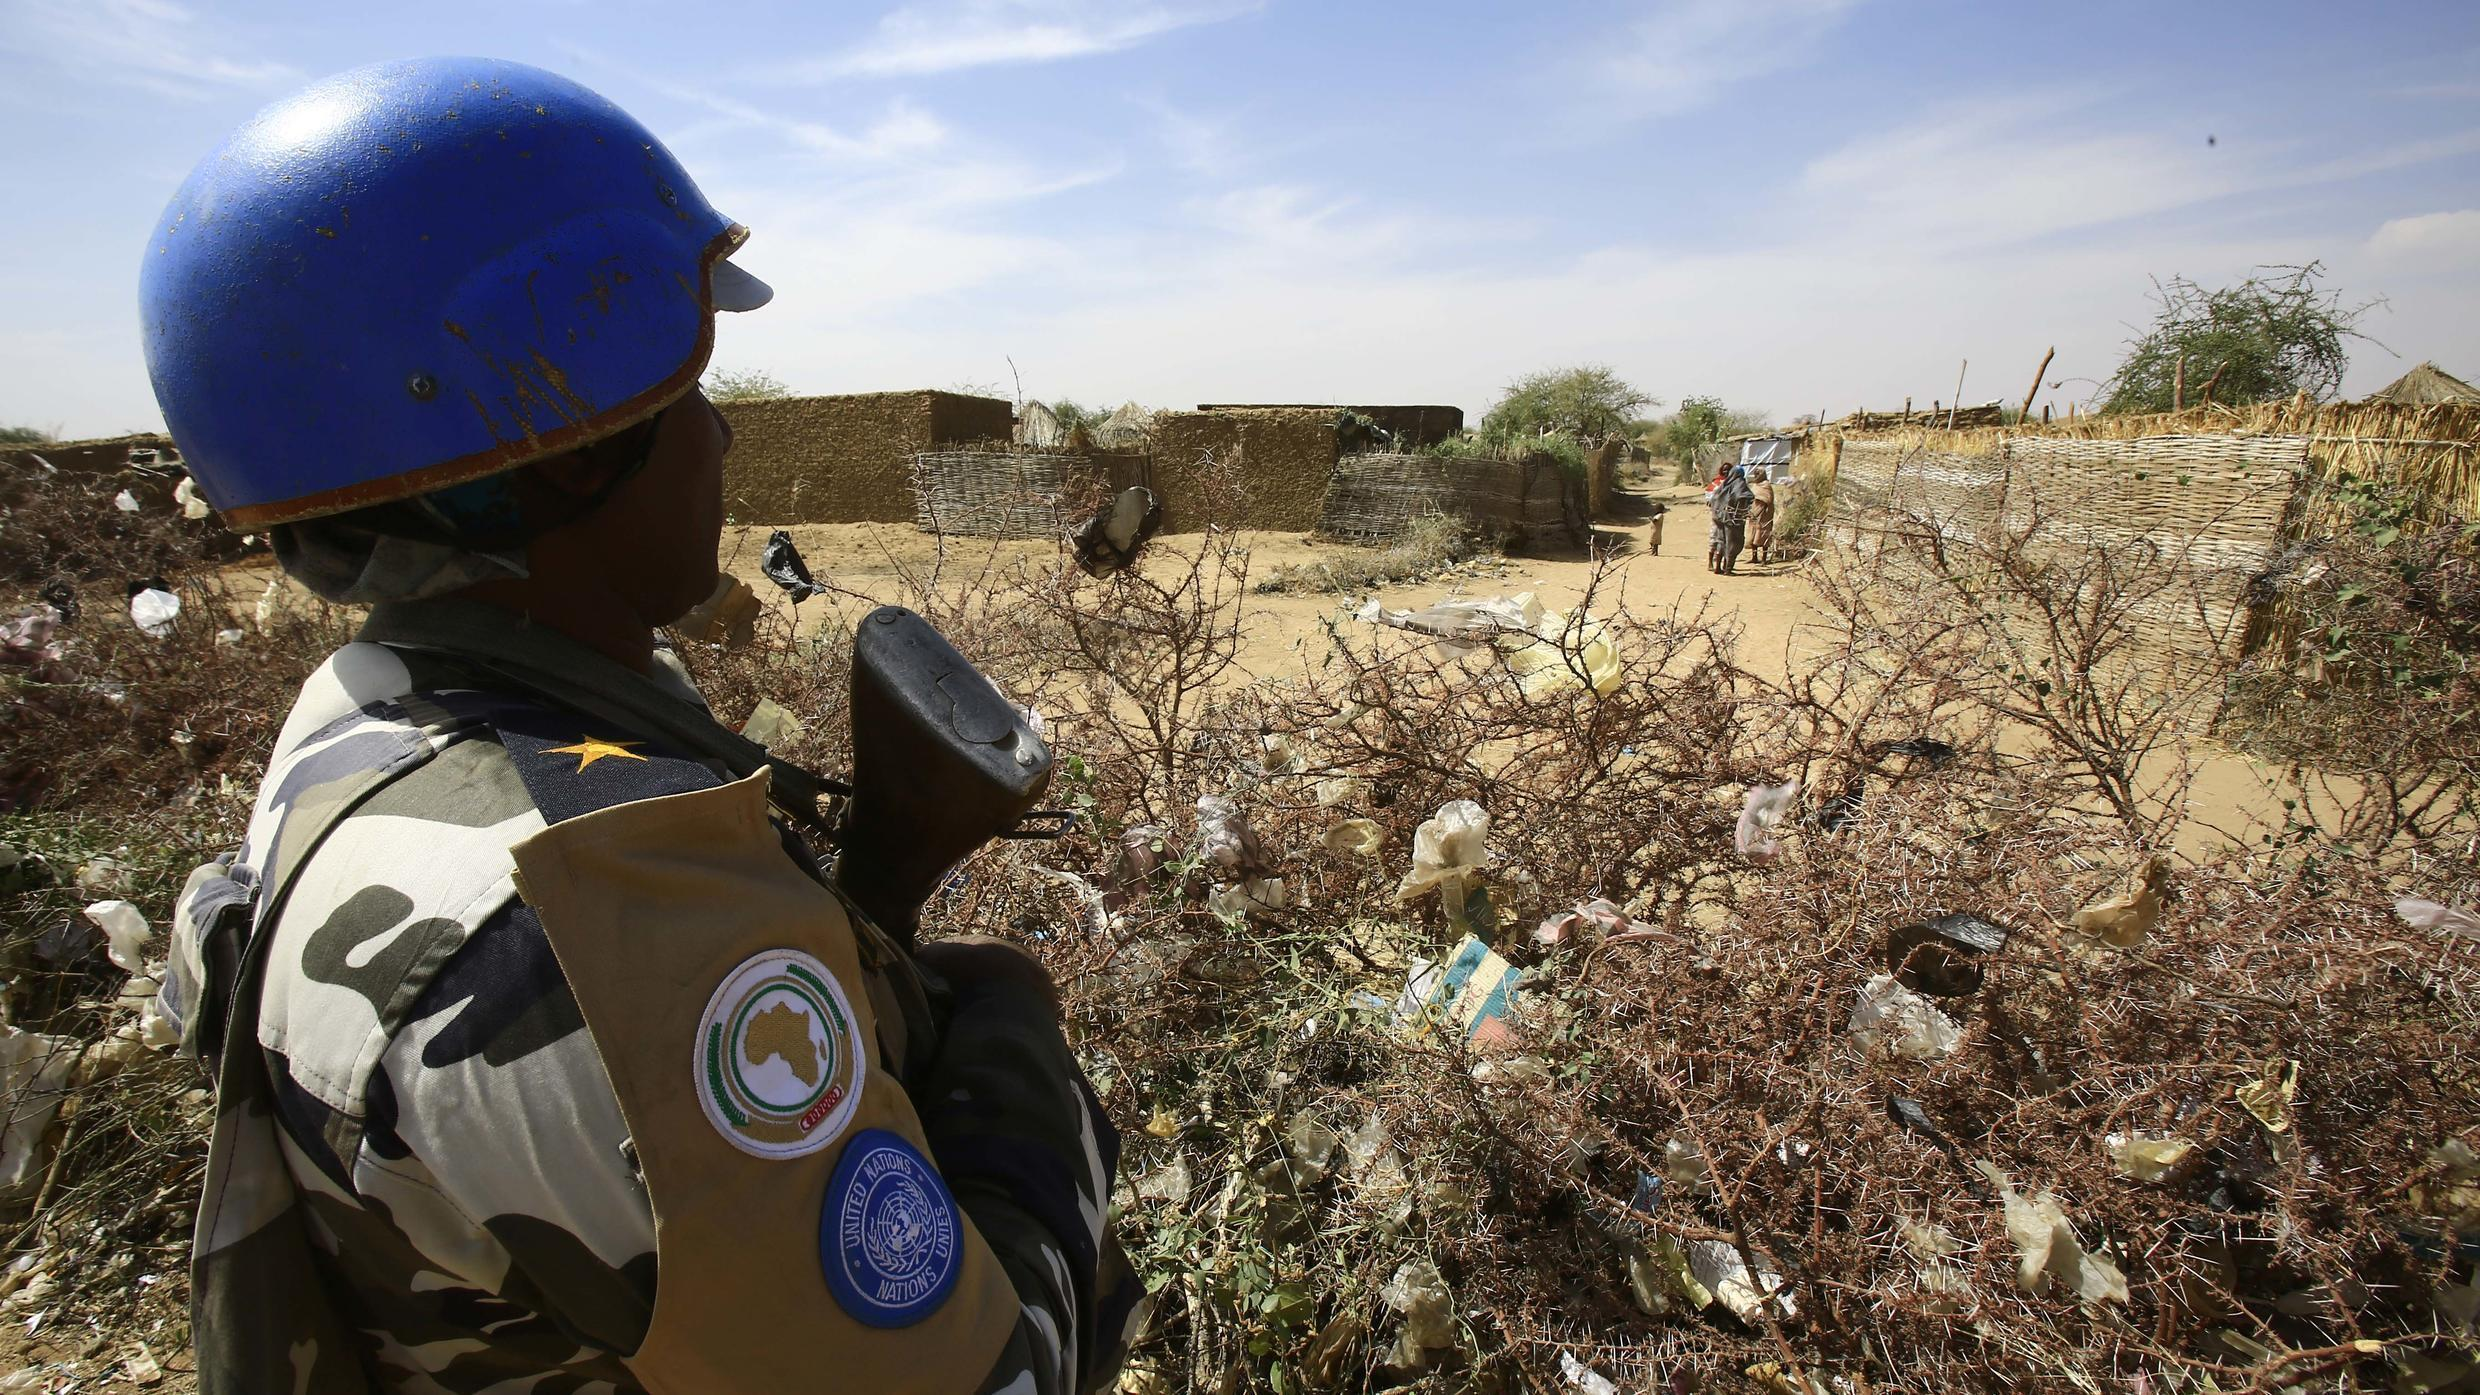 A UN peacekeeper stands guard at a refugee camp in the city of Nyala, in South Darfur, on January 9, 2017.